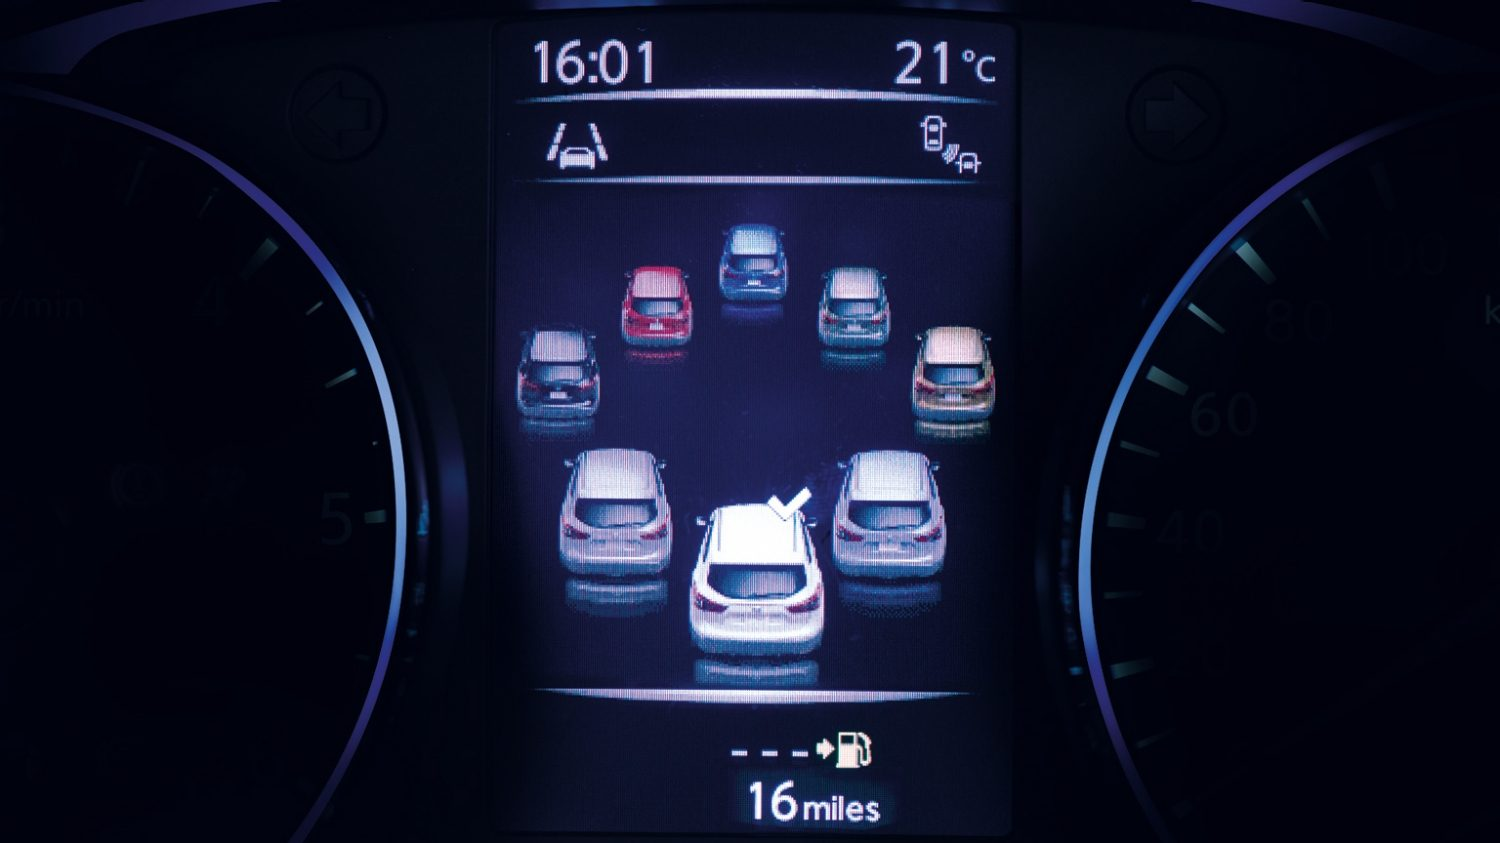 Small SUV features - Smart Display | Nissan Qashqai